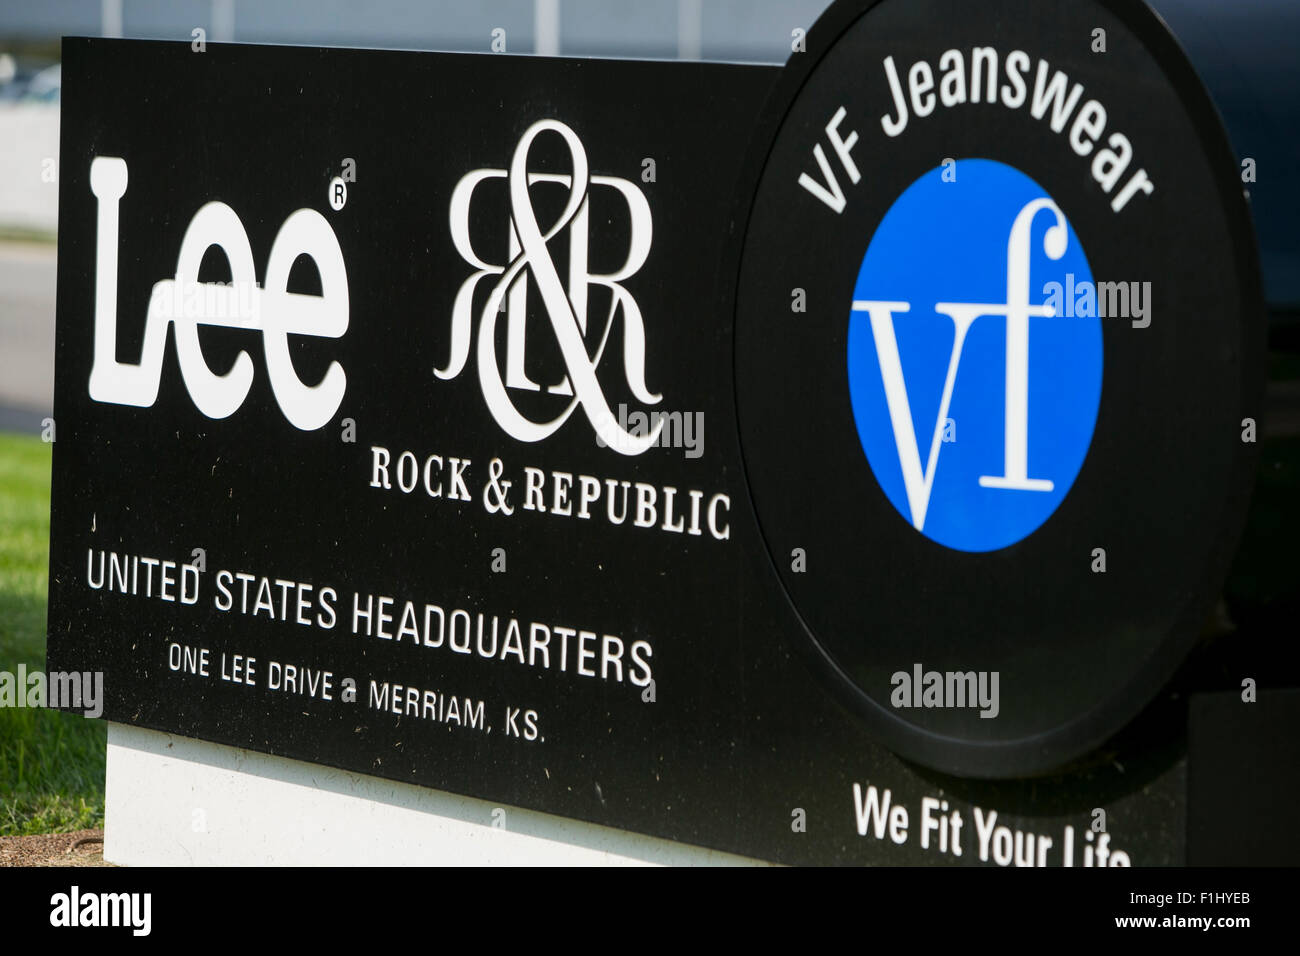 A logo sign outside the headquarters of Lee Jeans, a division of the VF Corporation in Merriam, Kansas on August - Stock Image